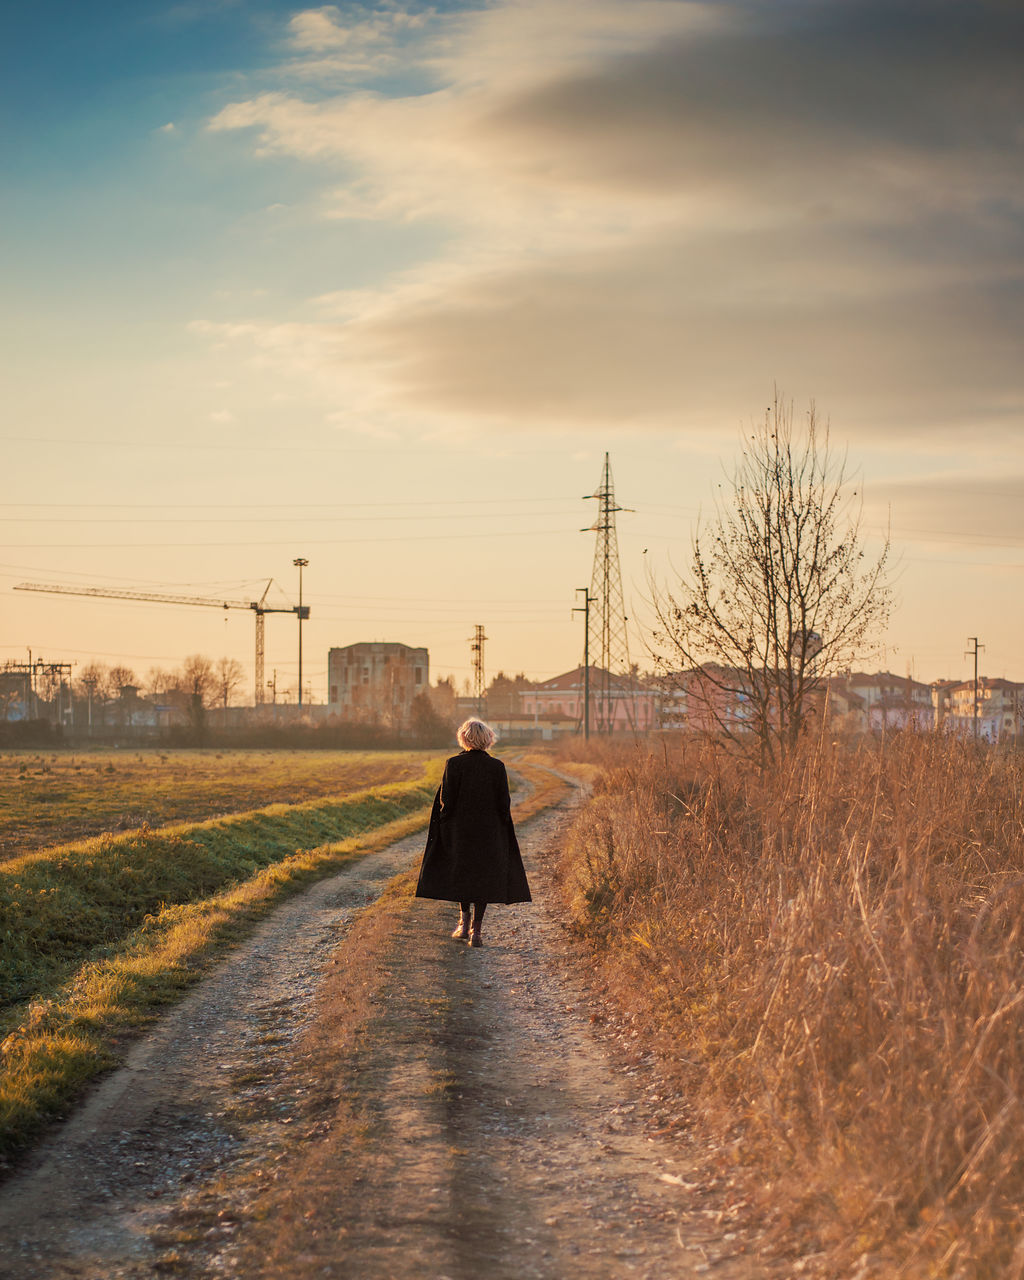 Rear View Of Woman Walking On Road Against Sky During Sunset